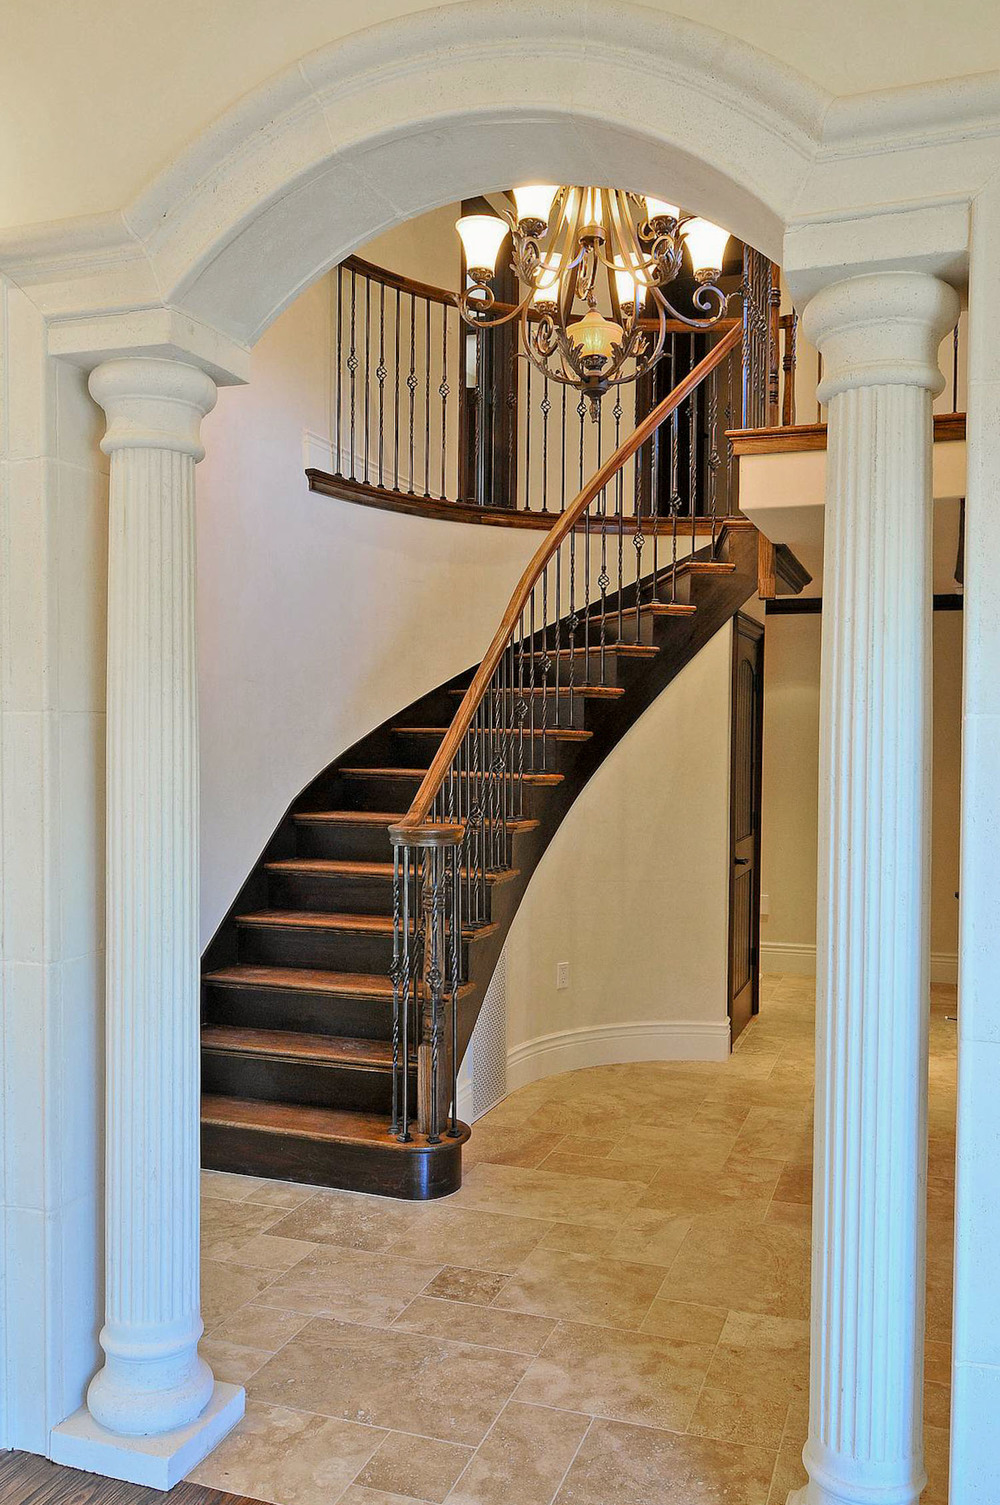 Classic Columned Entry with Curved Grand Staircase